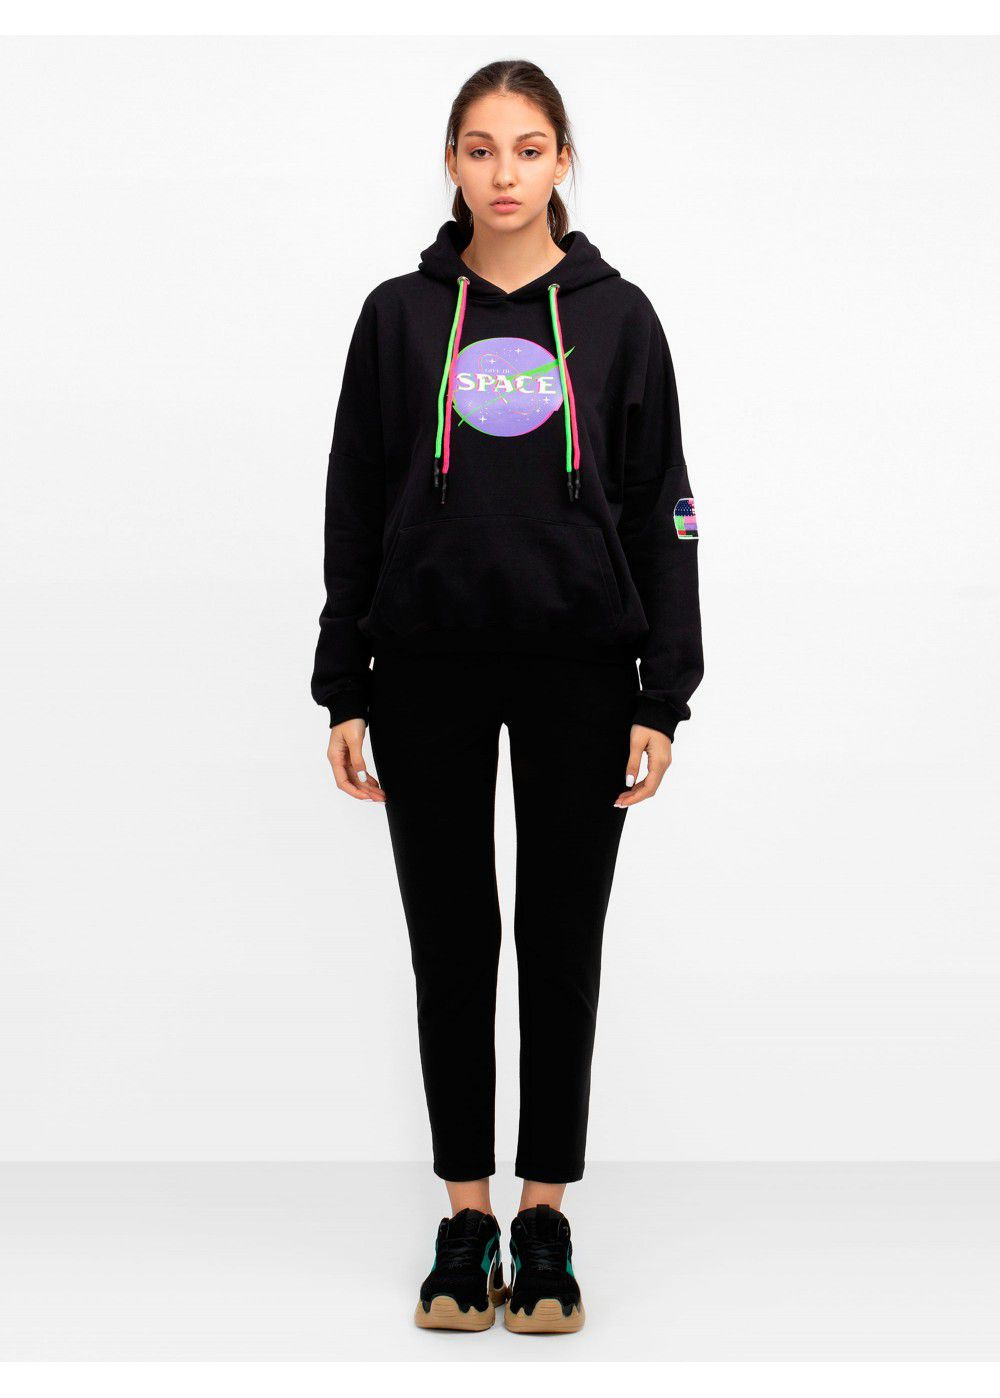 Give Me Space Black Hoodie